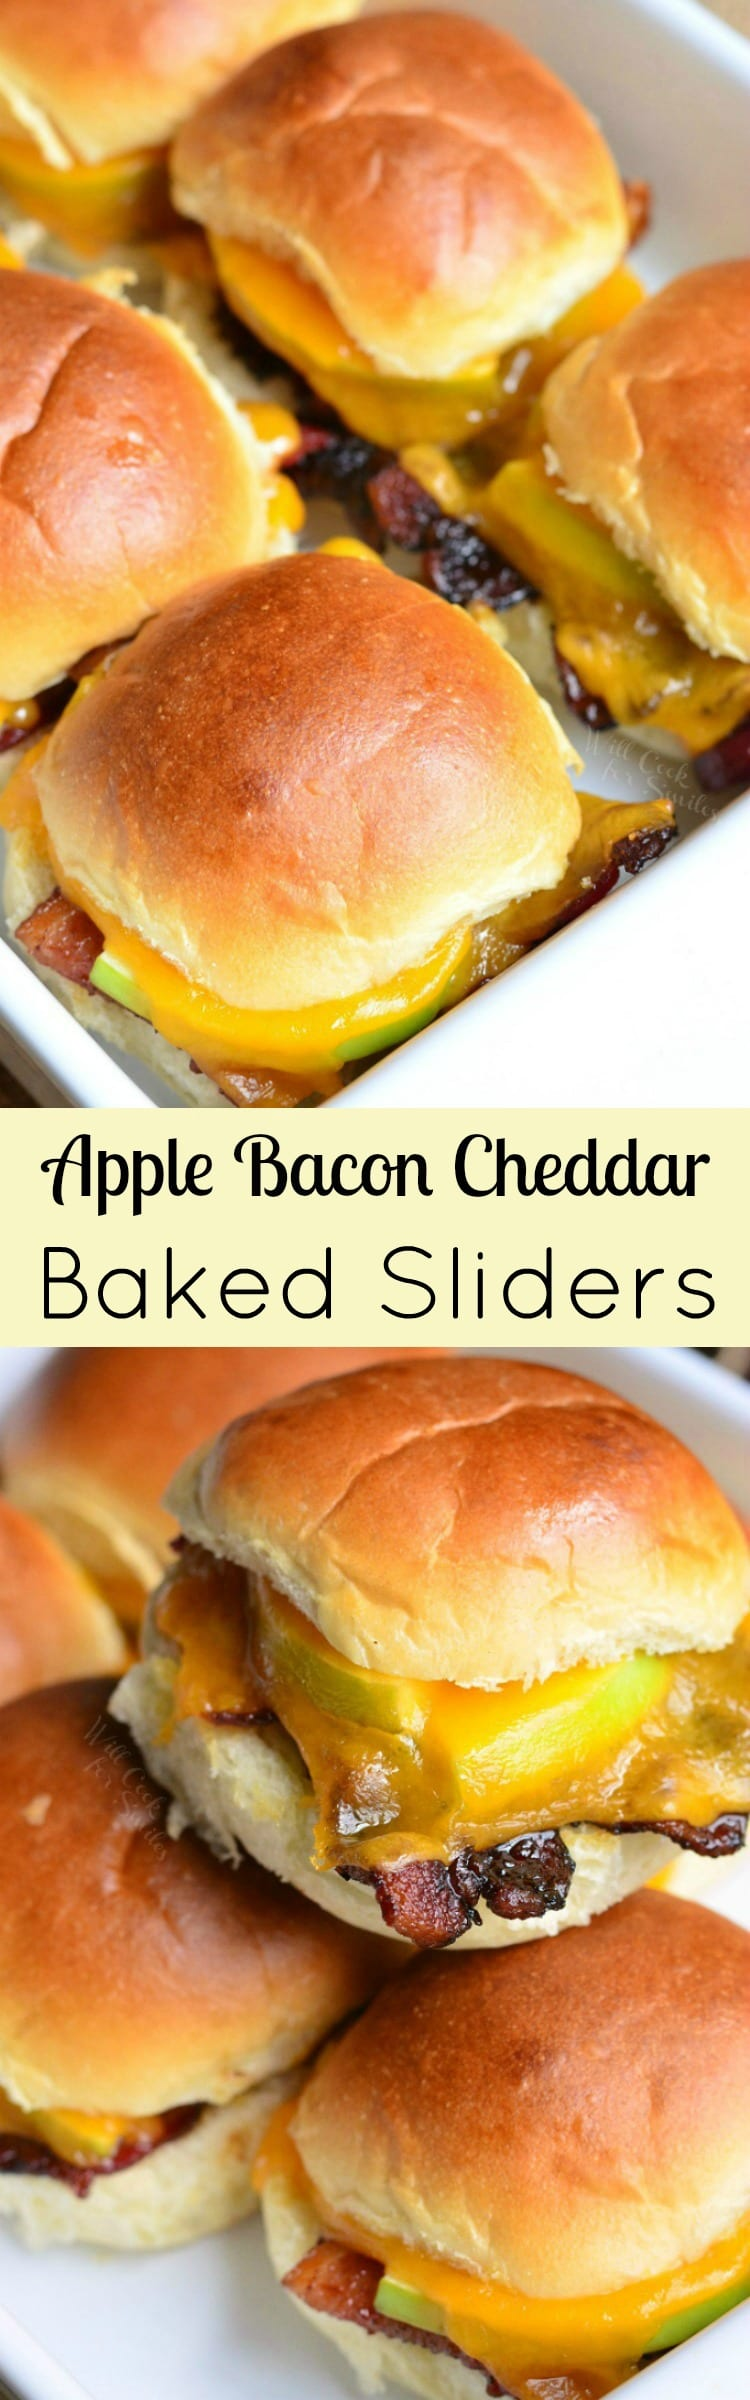 collage of top view Apple Bacon Cheddar Baked Sliders bottom is sliders stacked on a baking dish